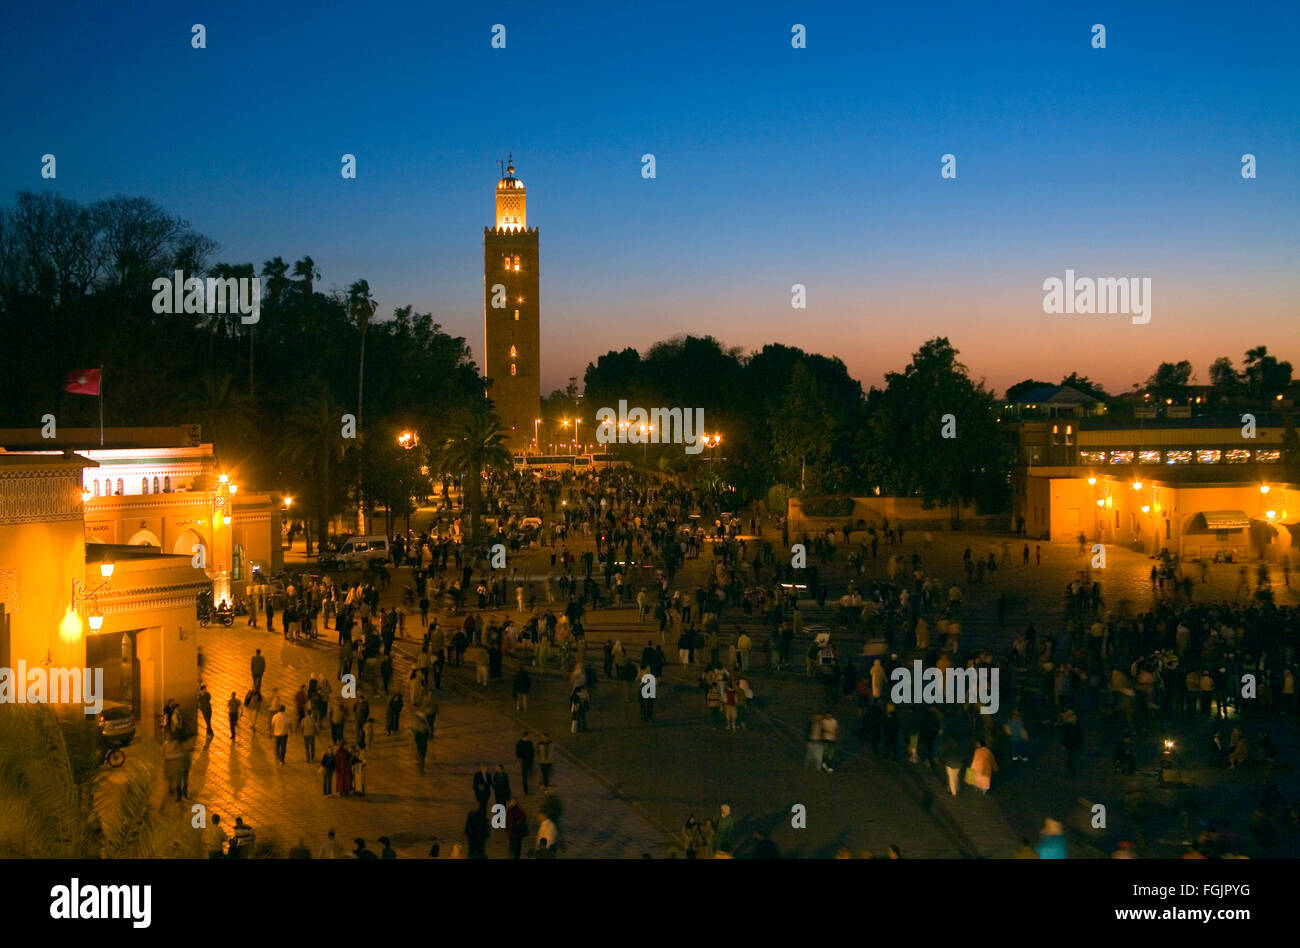 La Koutoubia Mosque and  Jemaa El Fna Square in Marrakech at nightime. Morocco - Stock Image